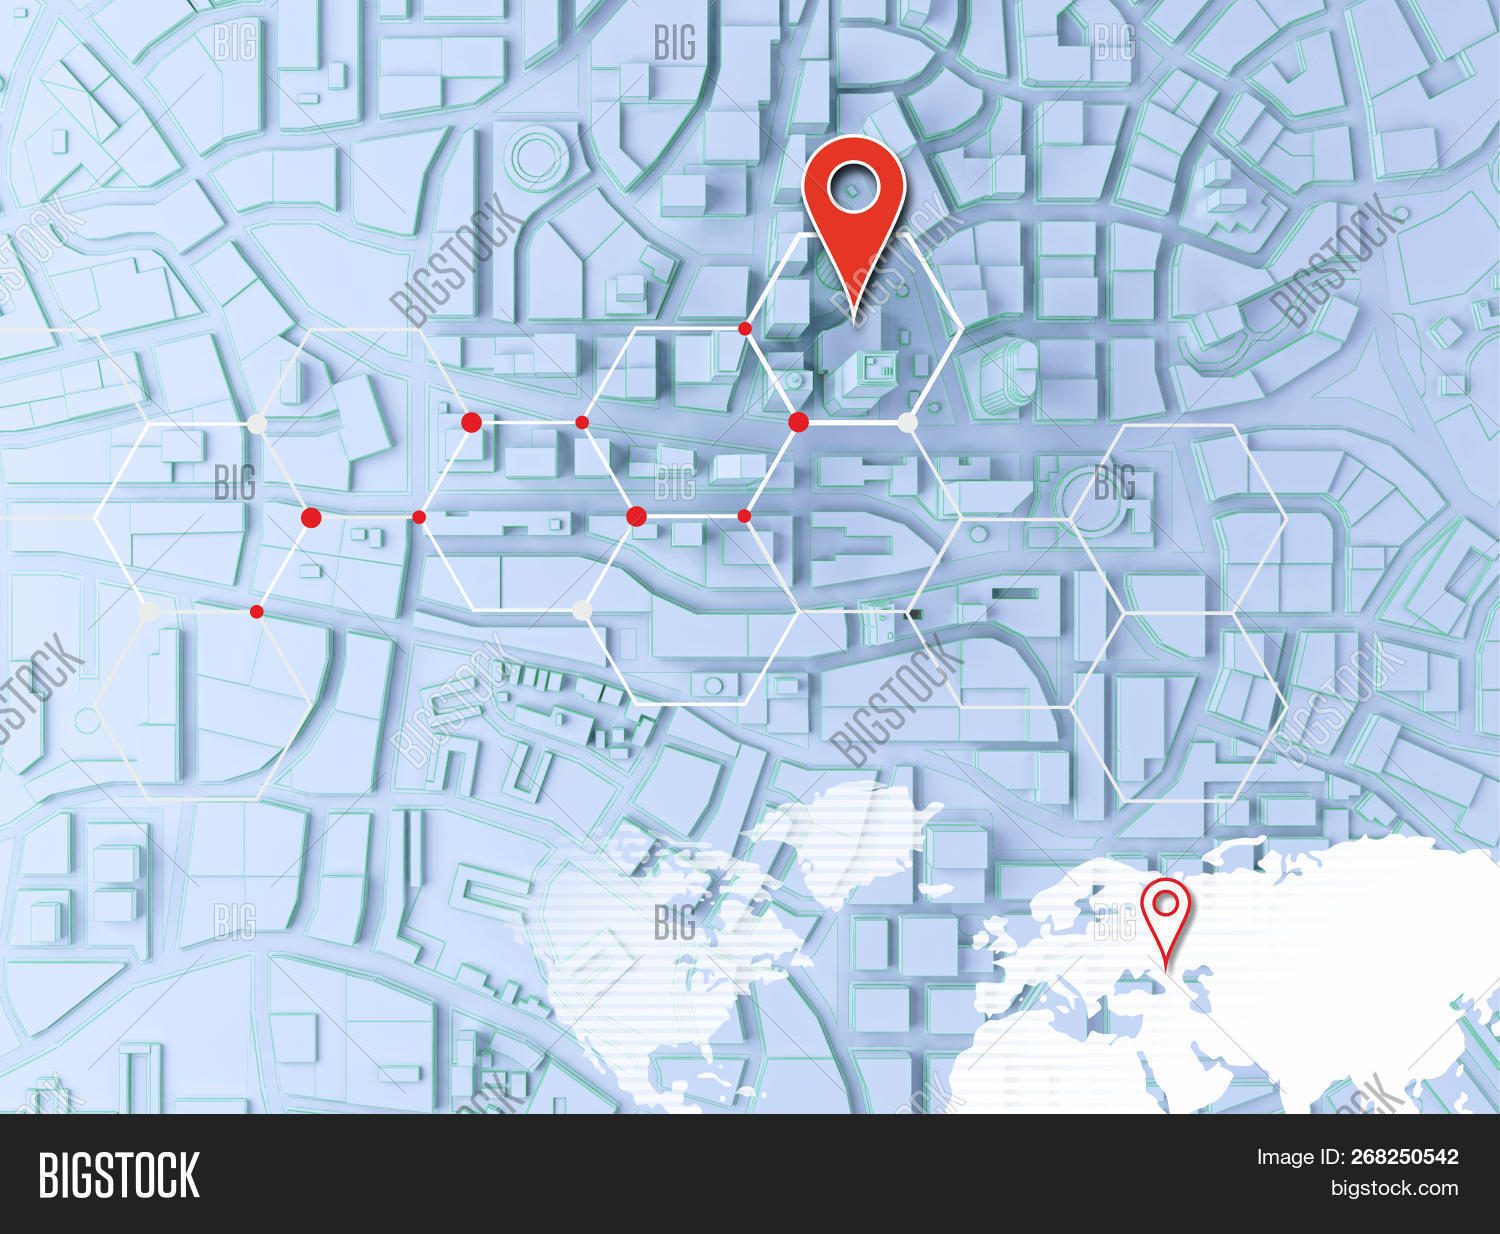 Low Poly City Top View Image & Photo (Free Trial) | Bigstock